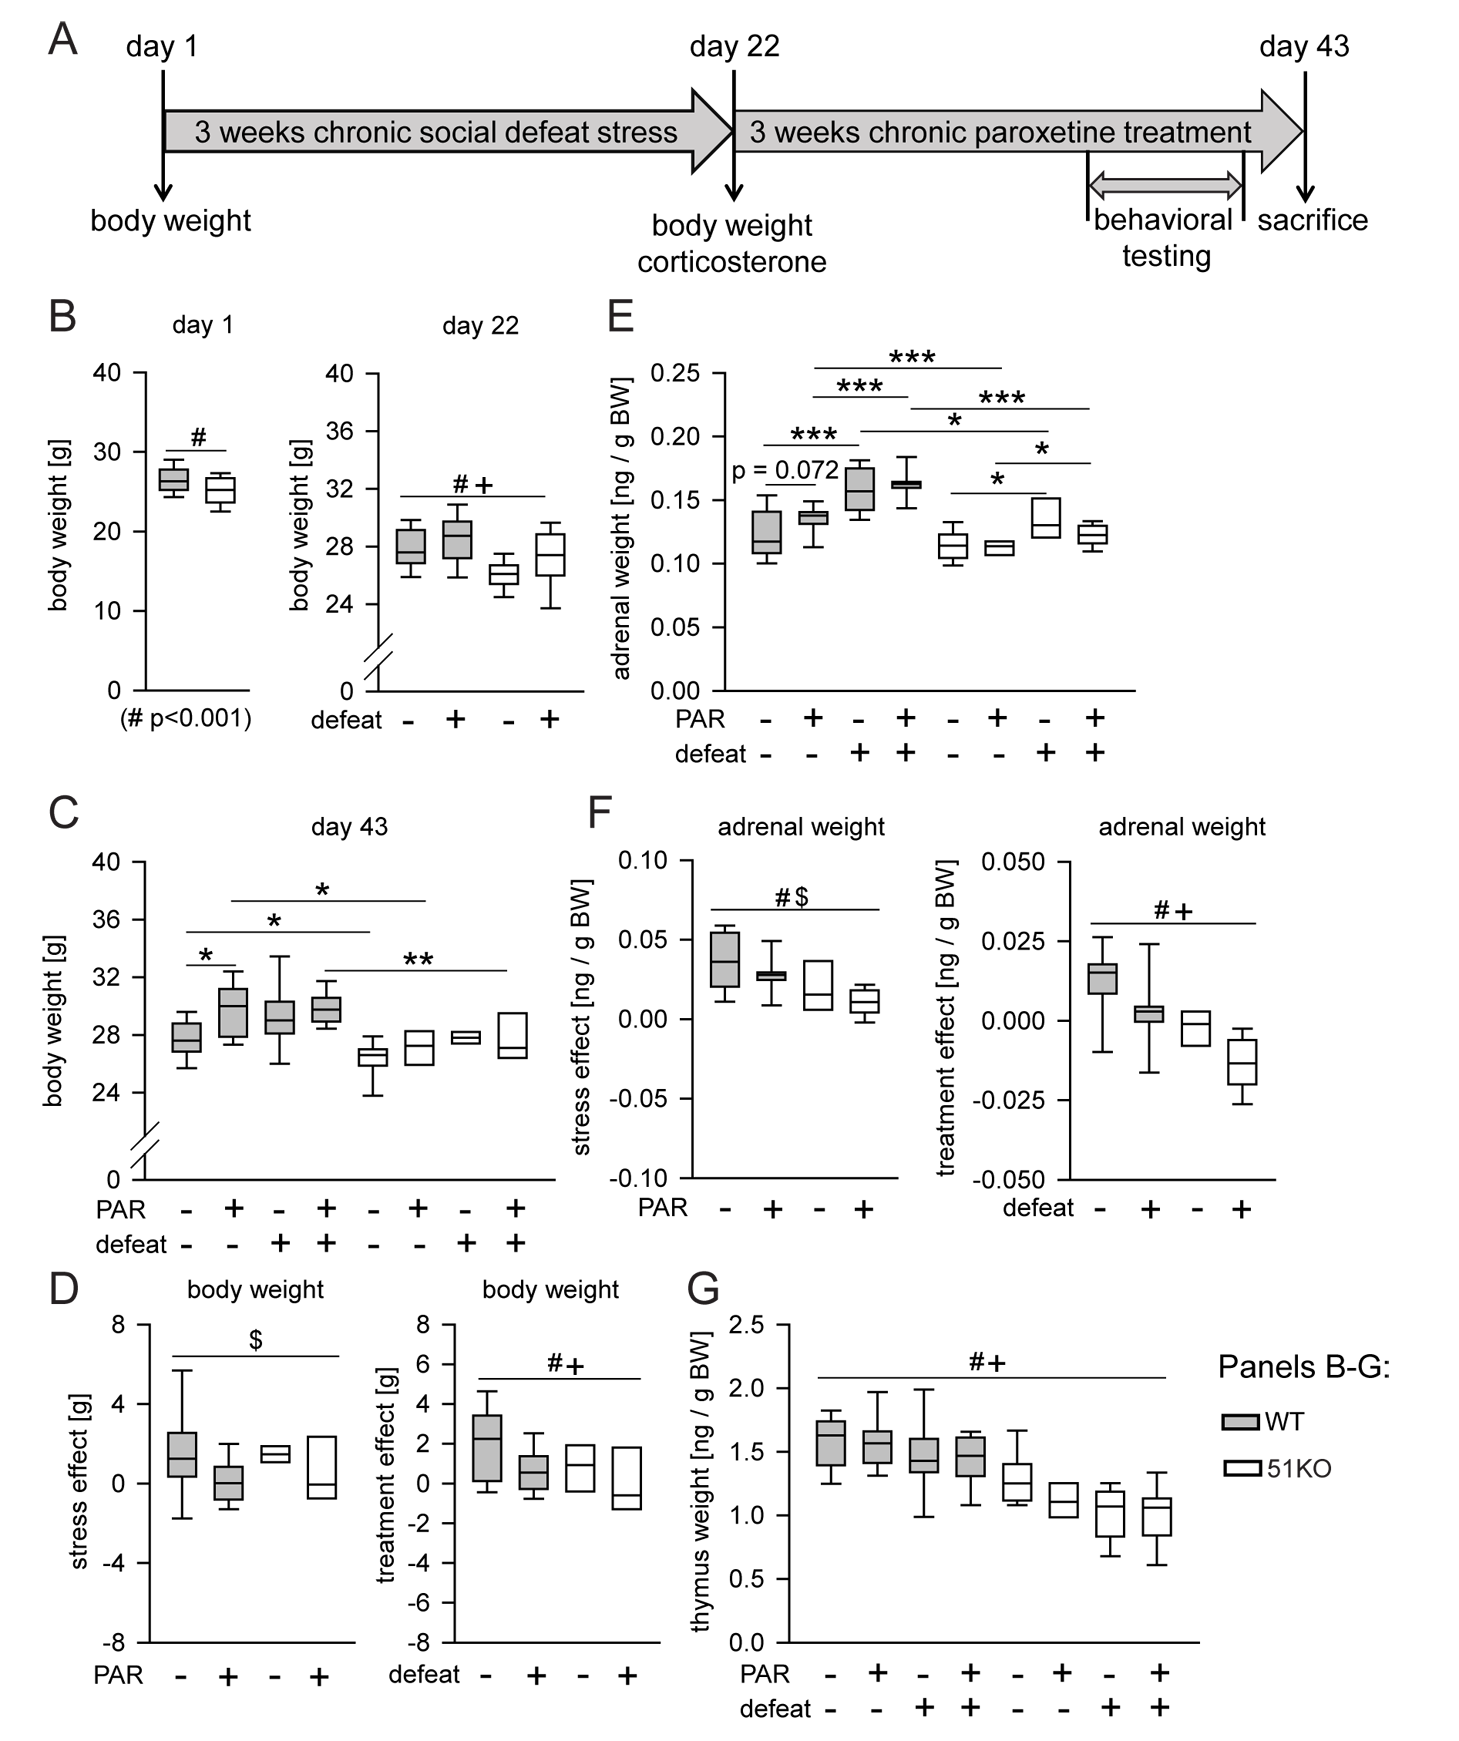 Deletion of FKBP51 diminishes the physiological effects of chronic stress and chronic PAR treatment.